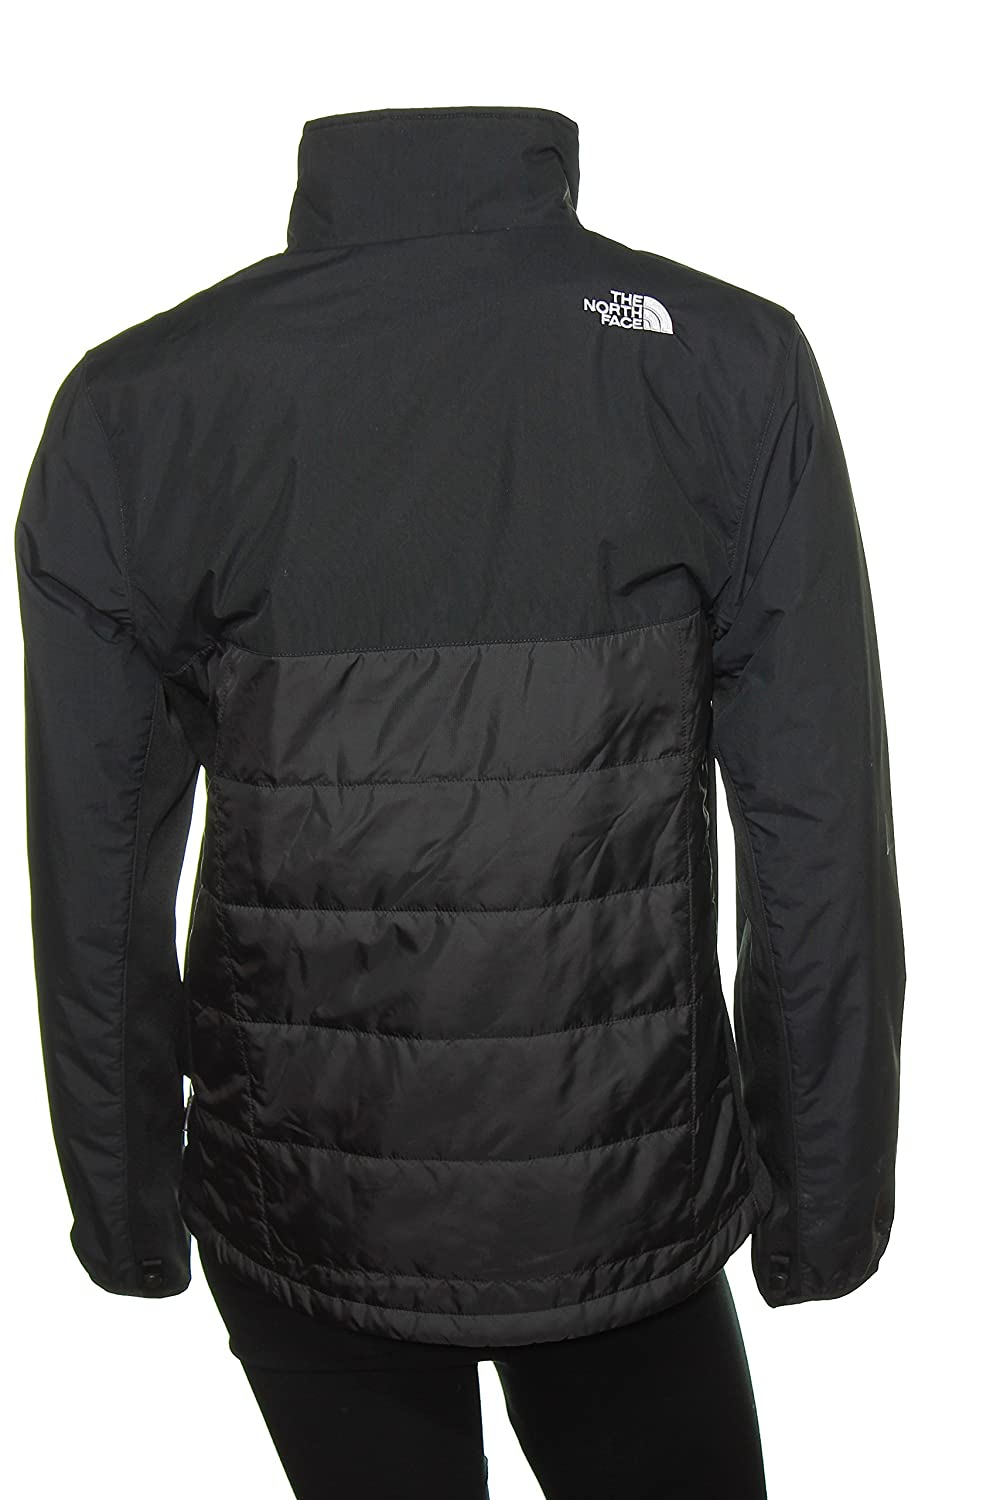 fbd994af7 Men's The North Face Redpoint Indy Jacket Medium Black: Amazon.ca ...